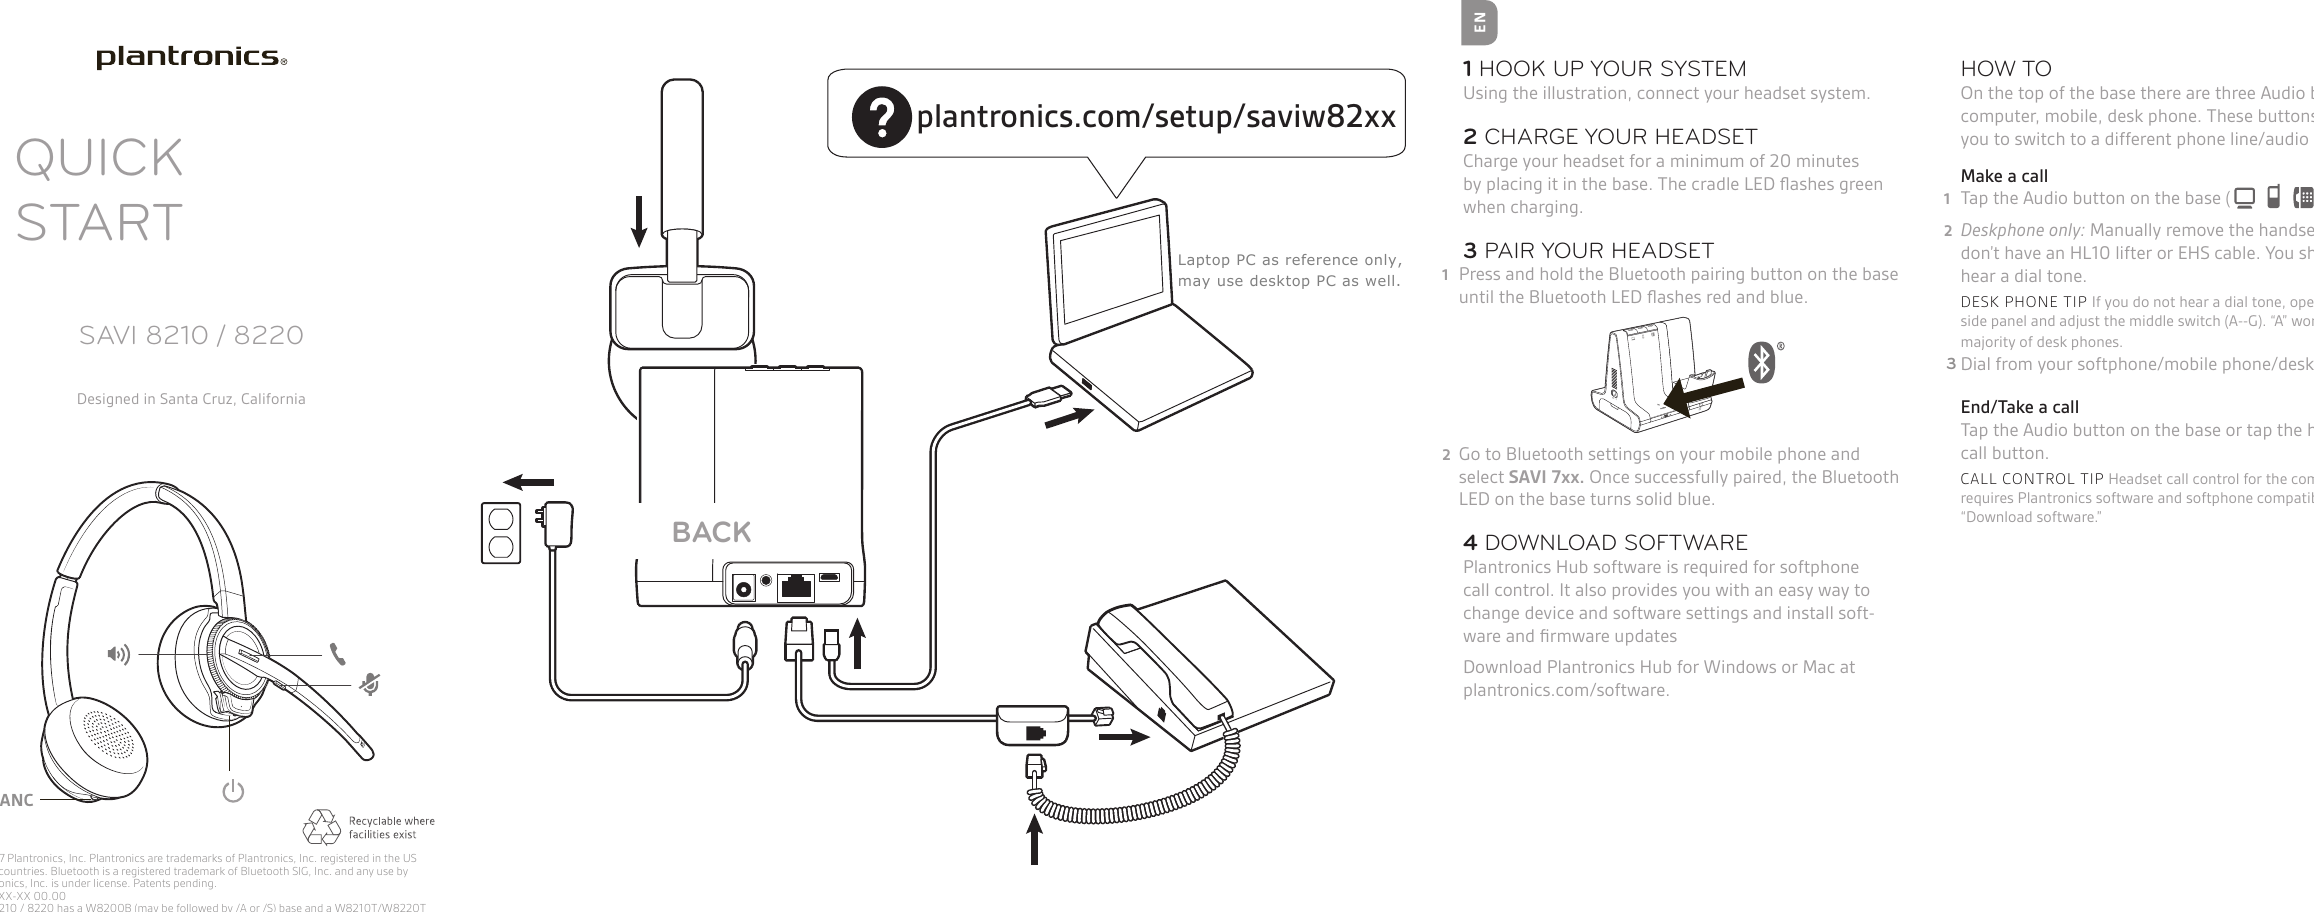 plantronics 590a pairing instructions